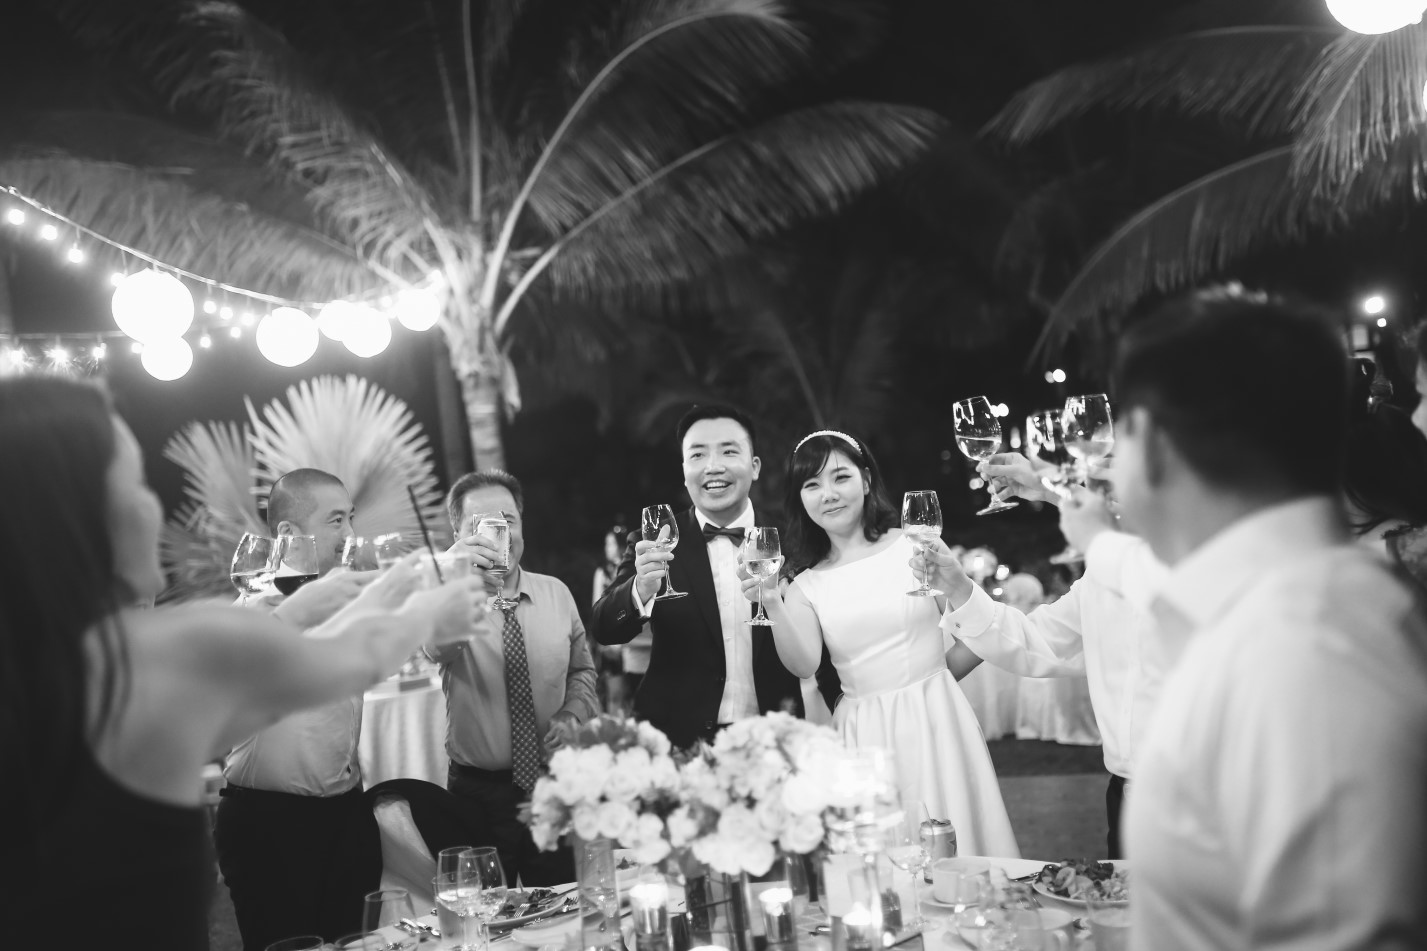 The wedding ceremony was held at InterContinental Danang Sun Peninsula Resort